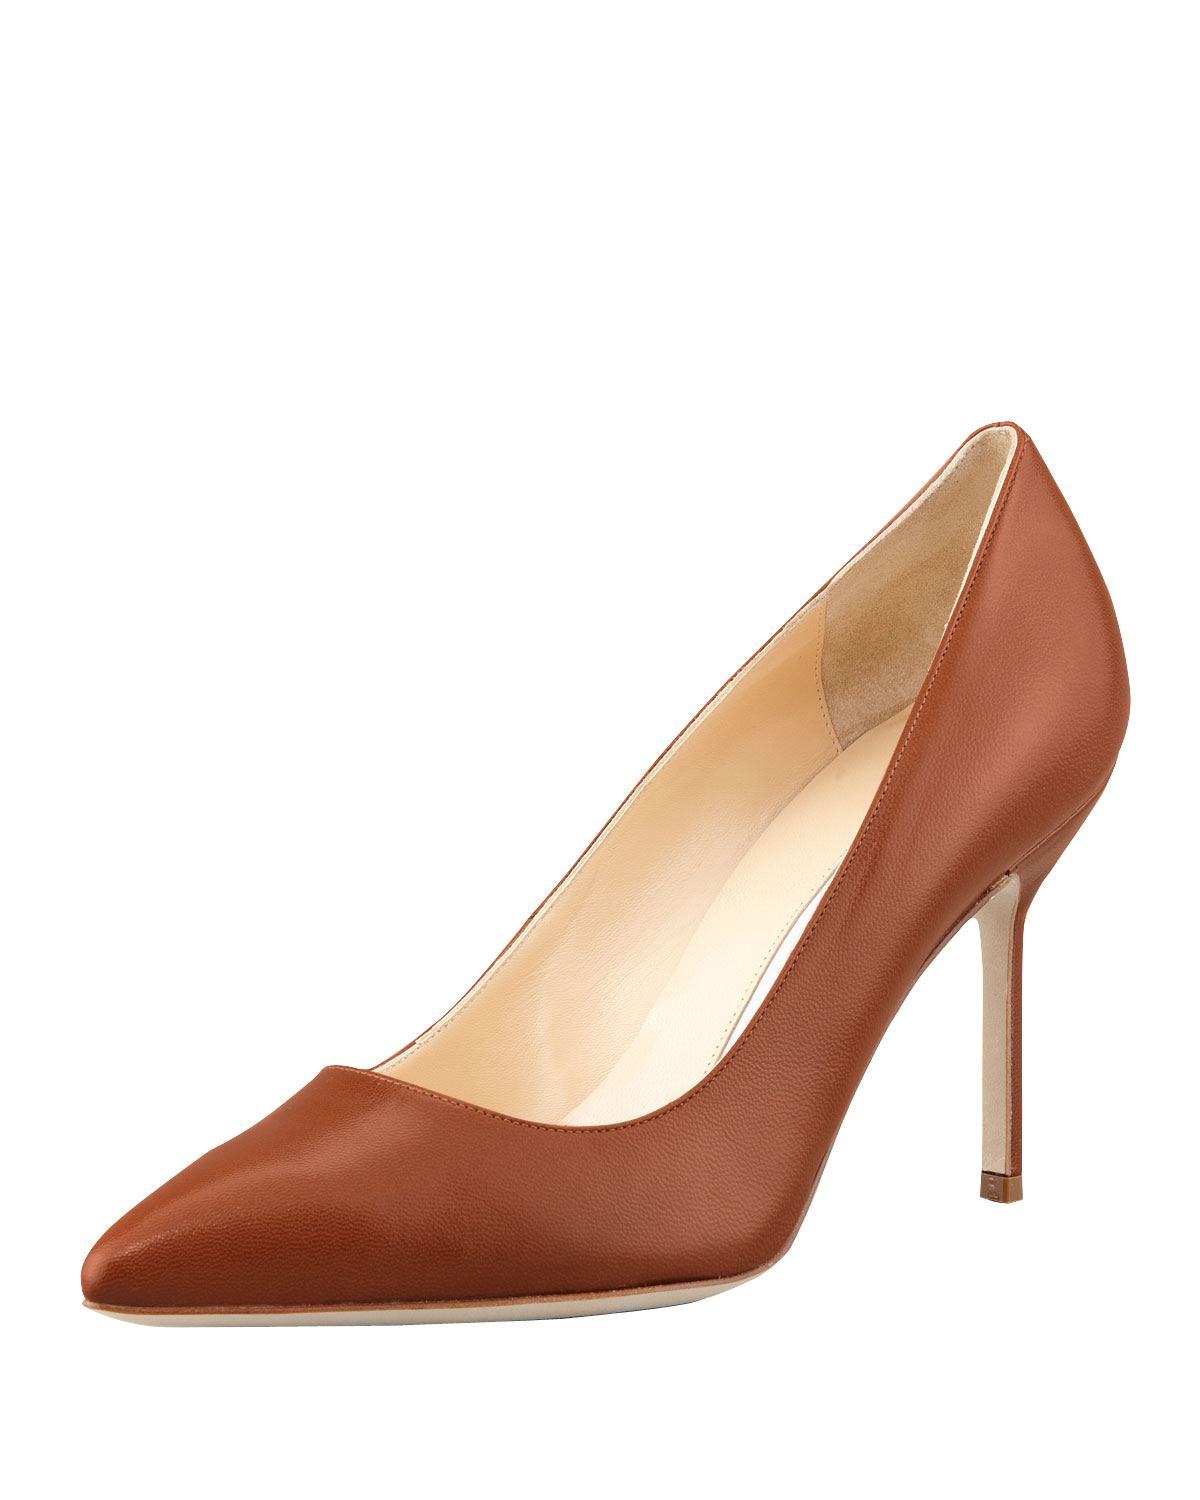 Manolo Blahnik BB Leather 90mm Pump, Caramel (Made to Order)